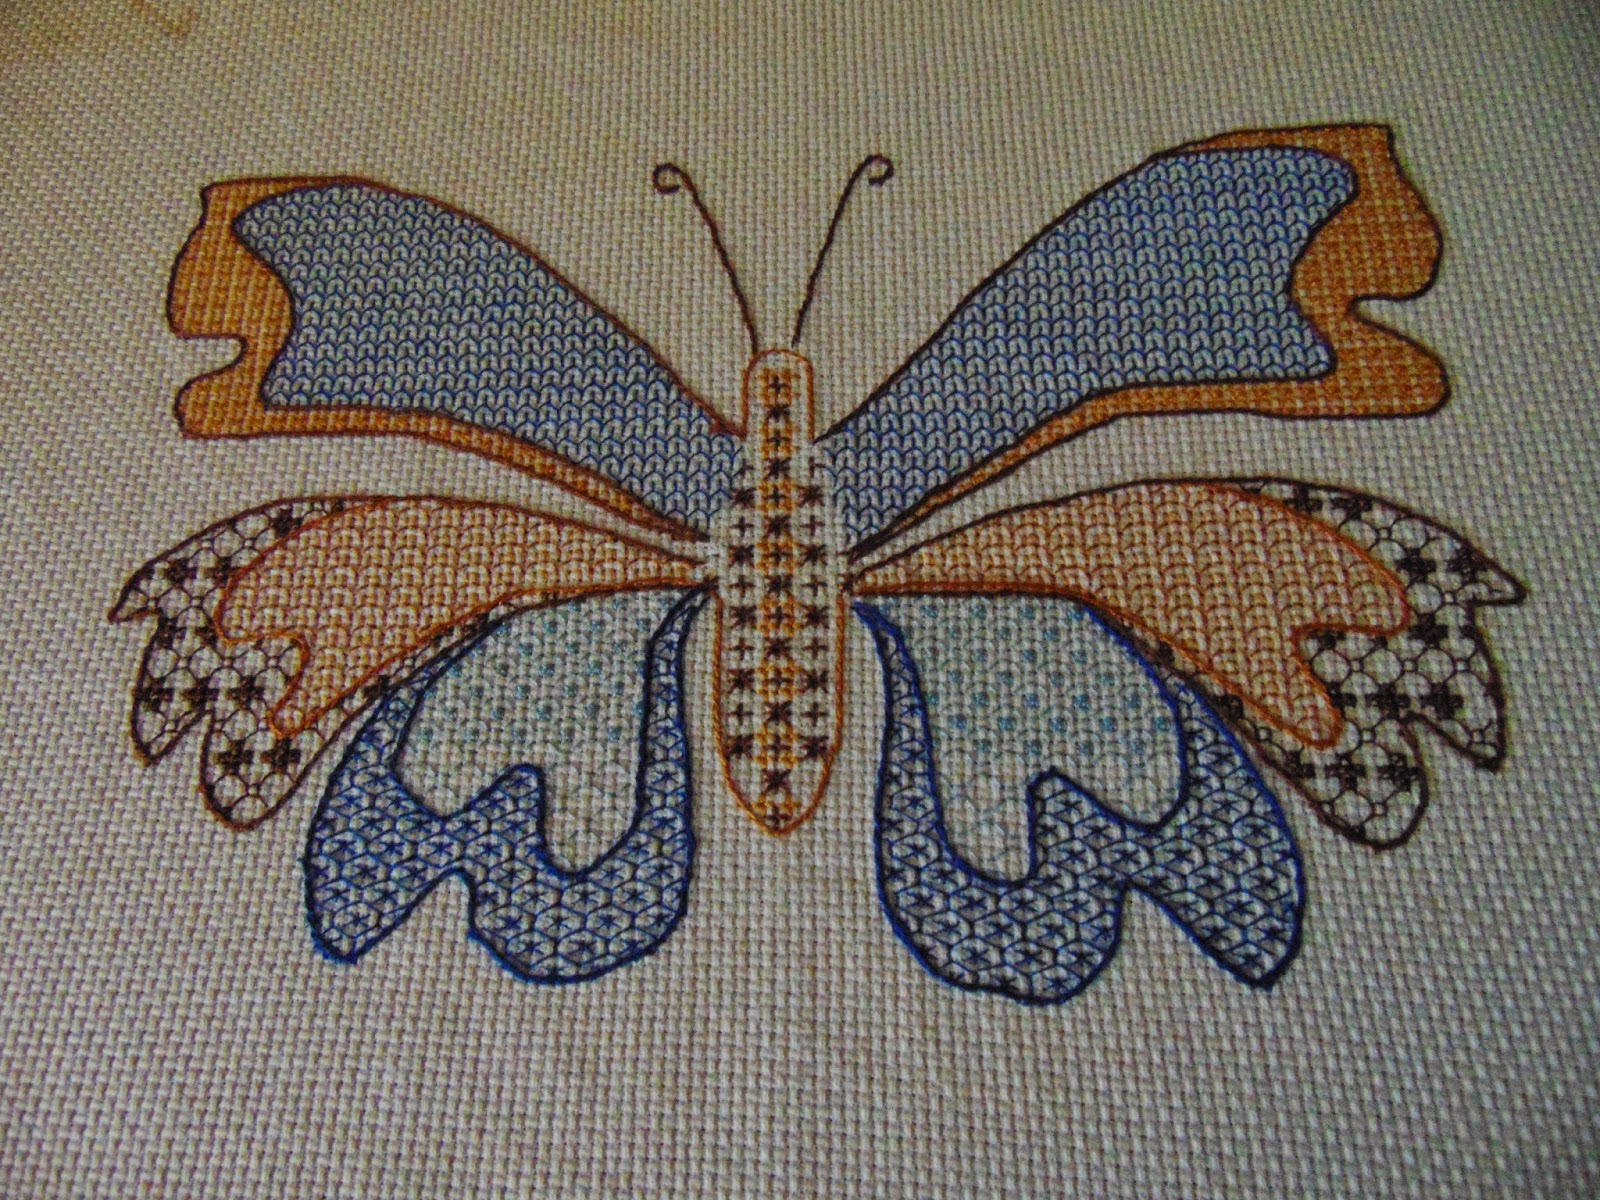 Redwork or blackwork butterfly in different colors and stitches